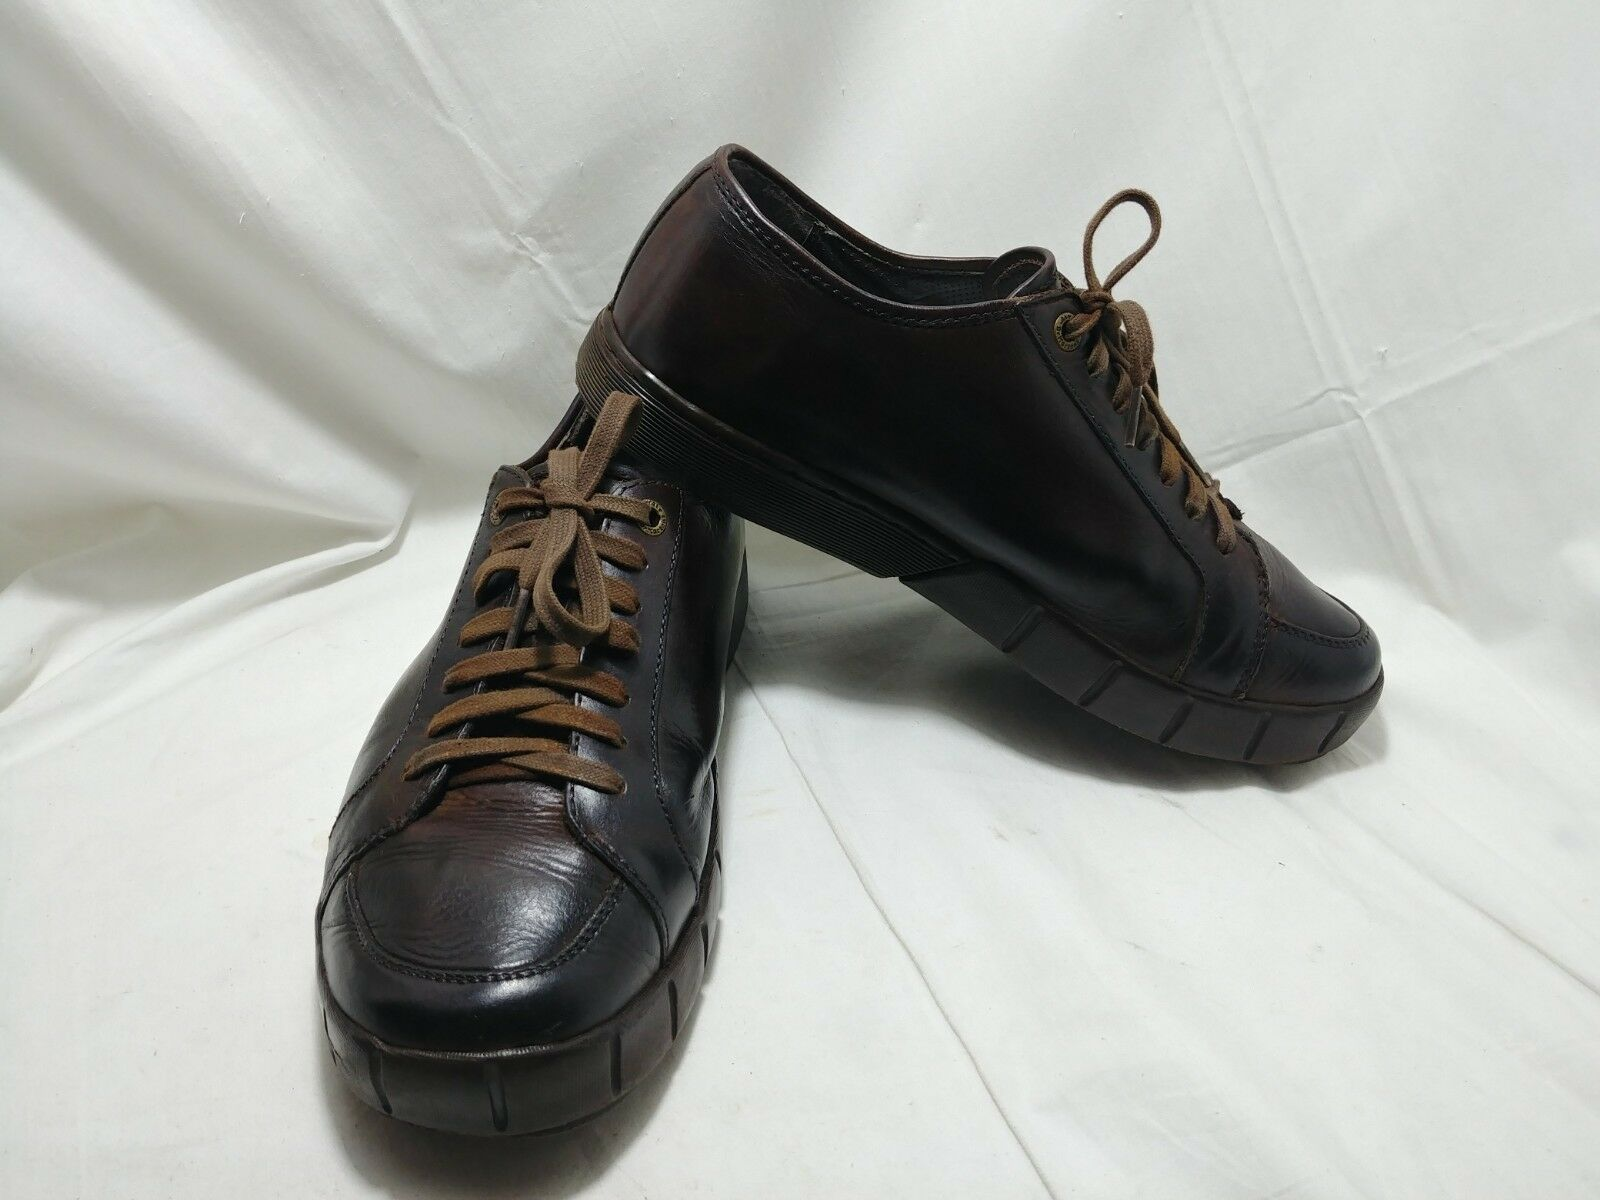 Dr Martens 12601 Mens US 11 Medium Wide Polished Brown Leather